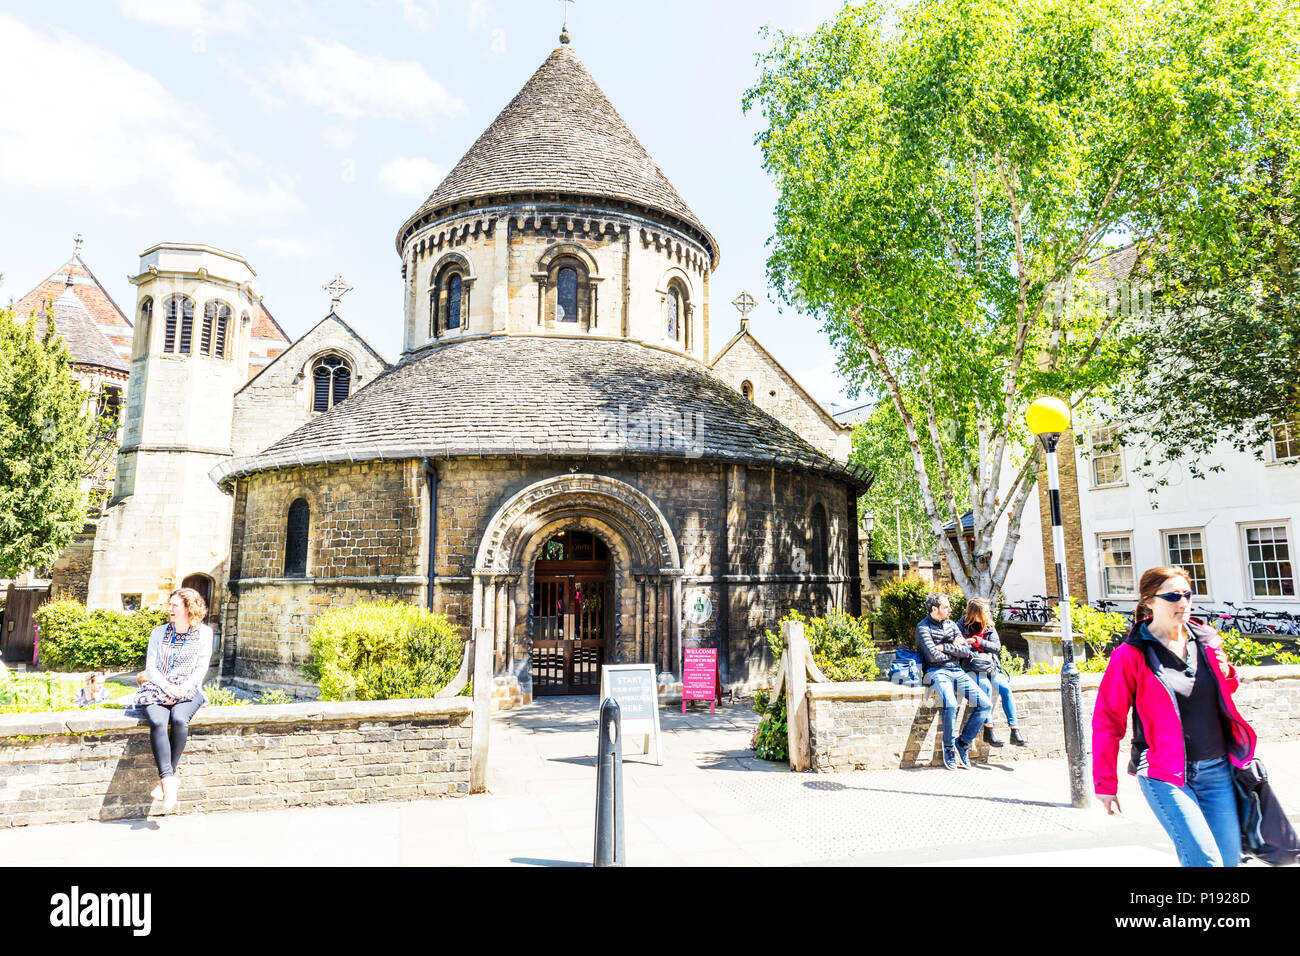 The Church of the Holy Sepulchre Cambridge, The Round Church Cambridge, Holy Sepulchre Cambridge, Holy Sepulchre, Cambridge, round church Cambridge, Stock Photo